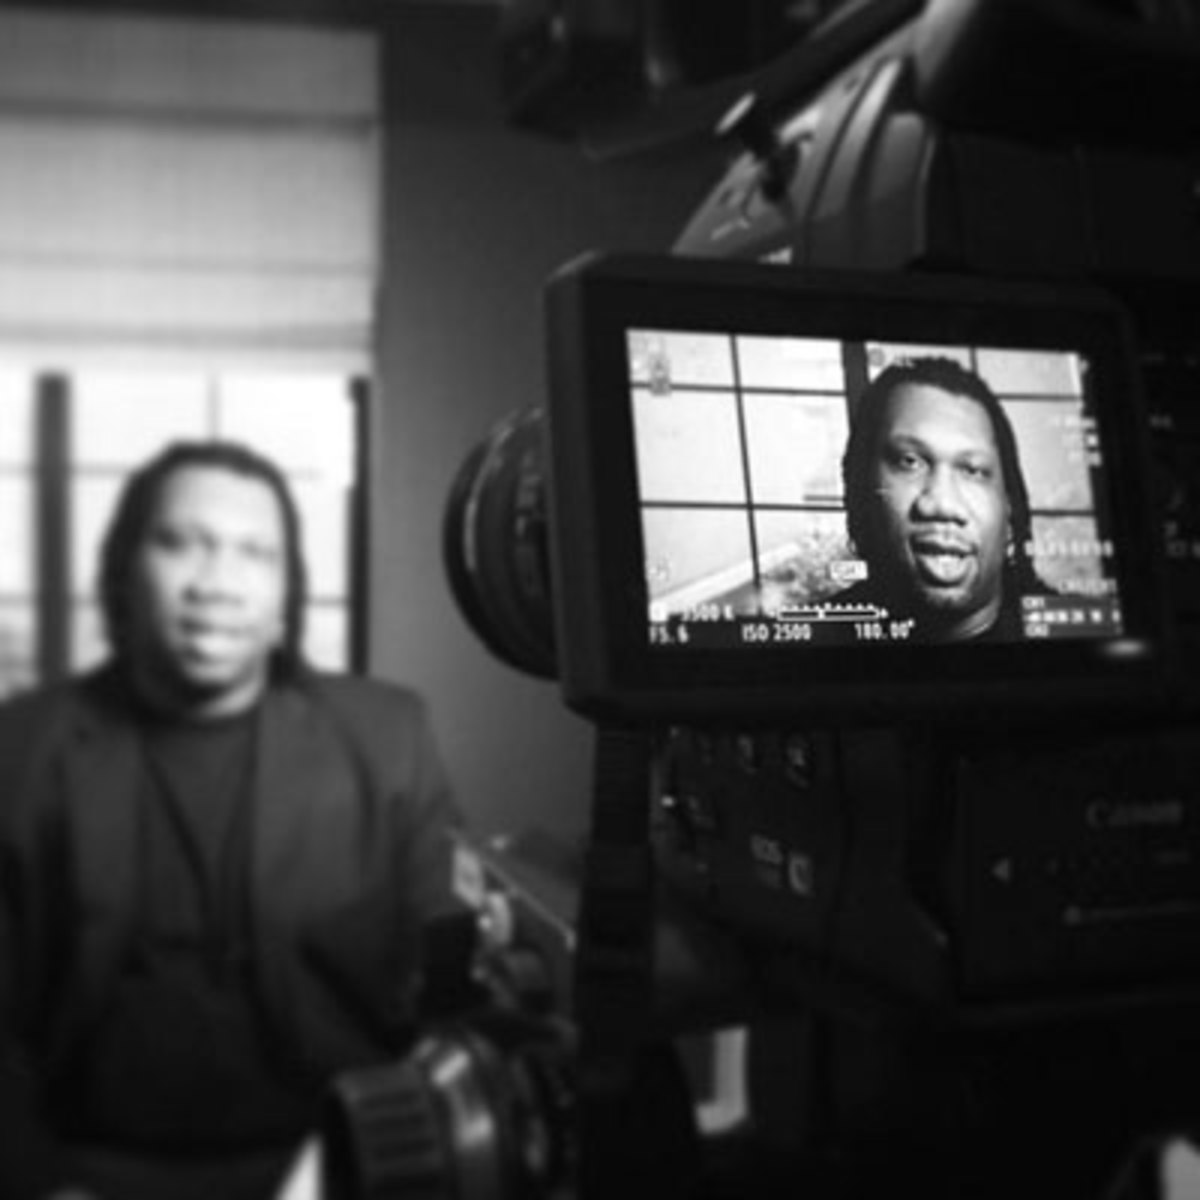 krs-one-new-album-interview.jpg